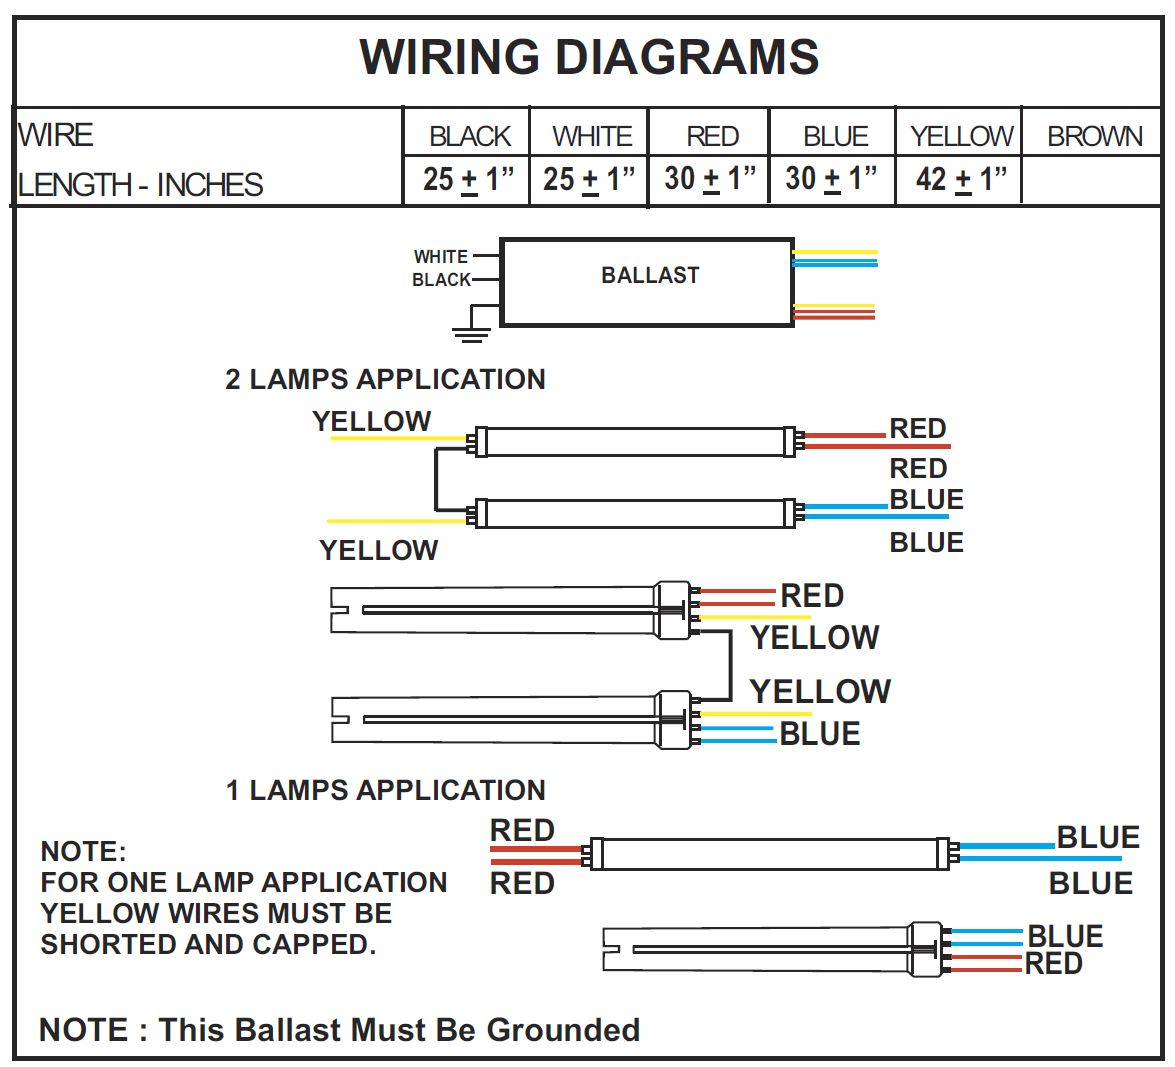 philips electronic ballast wiring diagram with T8 Ballast Wiring Diagram on Conversion T12 To T8 Ballast Wiring Diagram also Displayimage also Bodine B50 Emergency Ballast Wiring Diagram also View All further 181030629430.